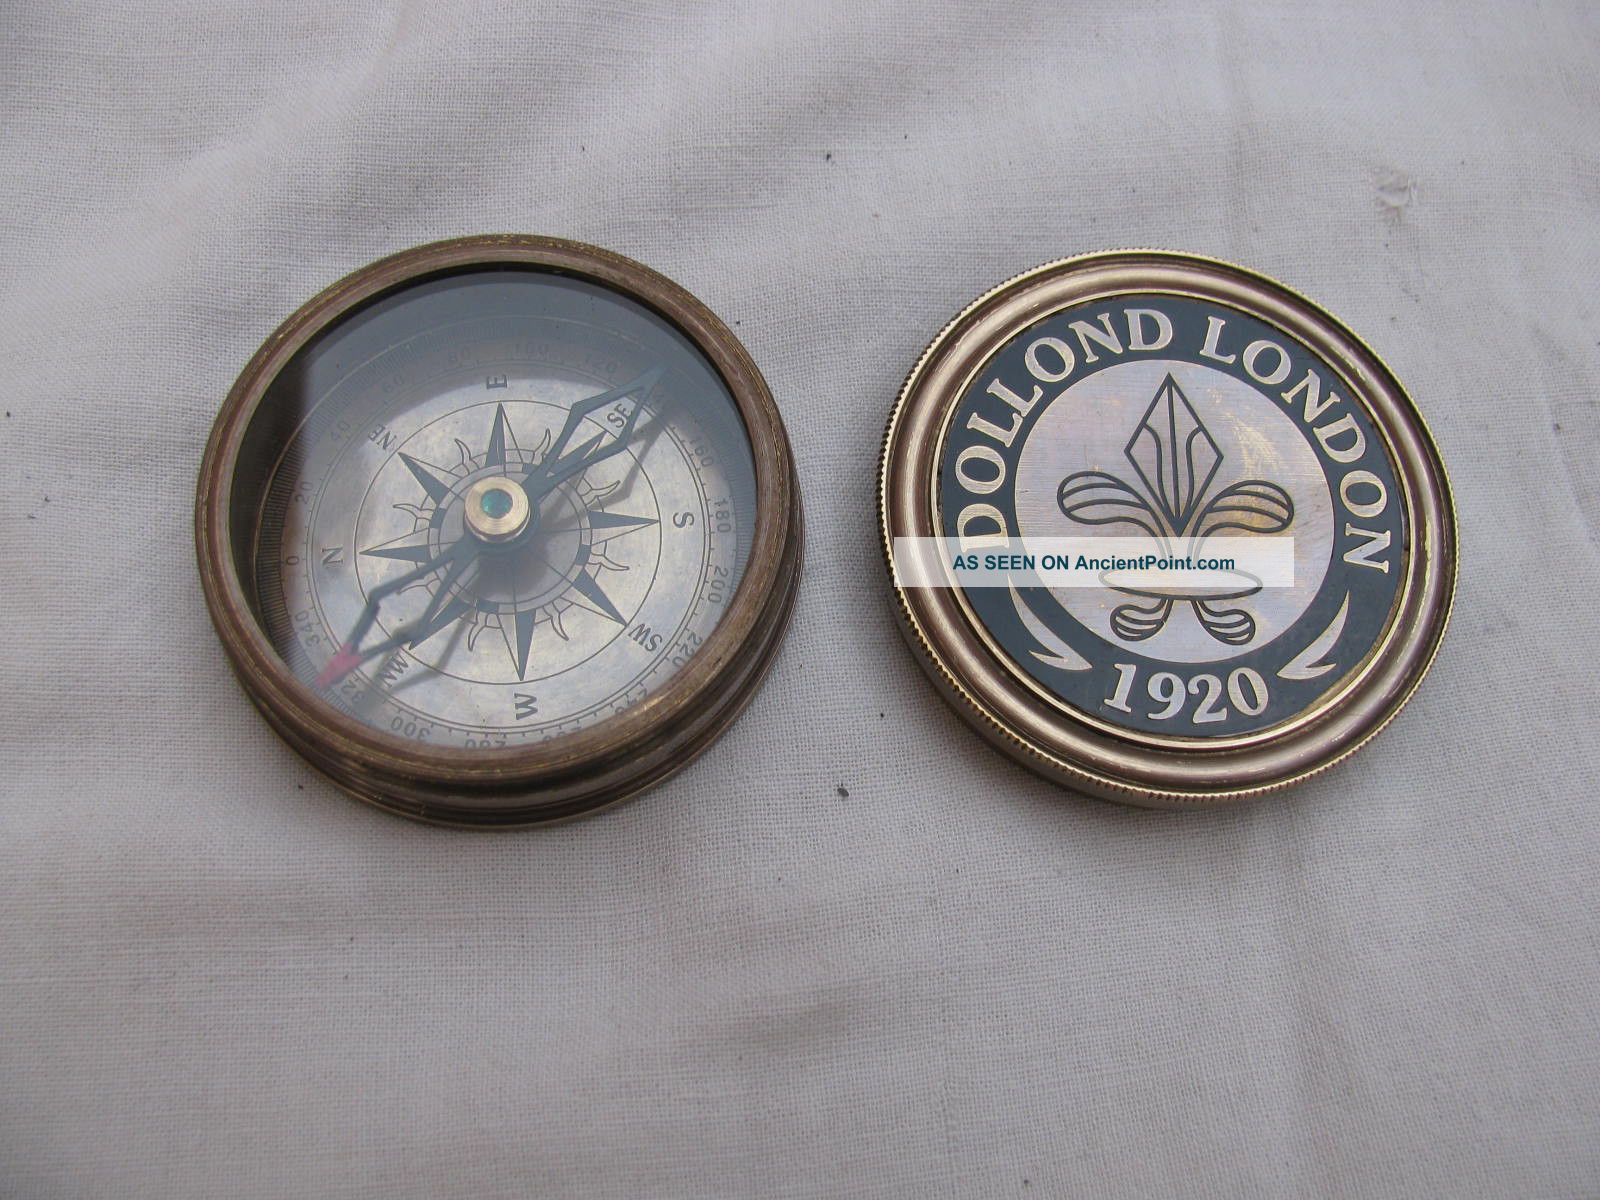 Rare Vintage Marine Antique Brass Compass Old Style Directional Nautical Compass Compasses photo